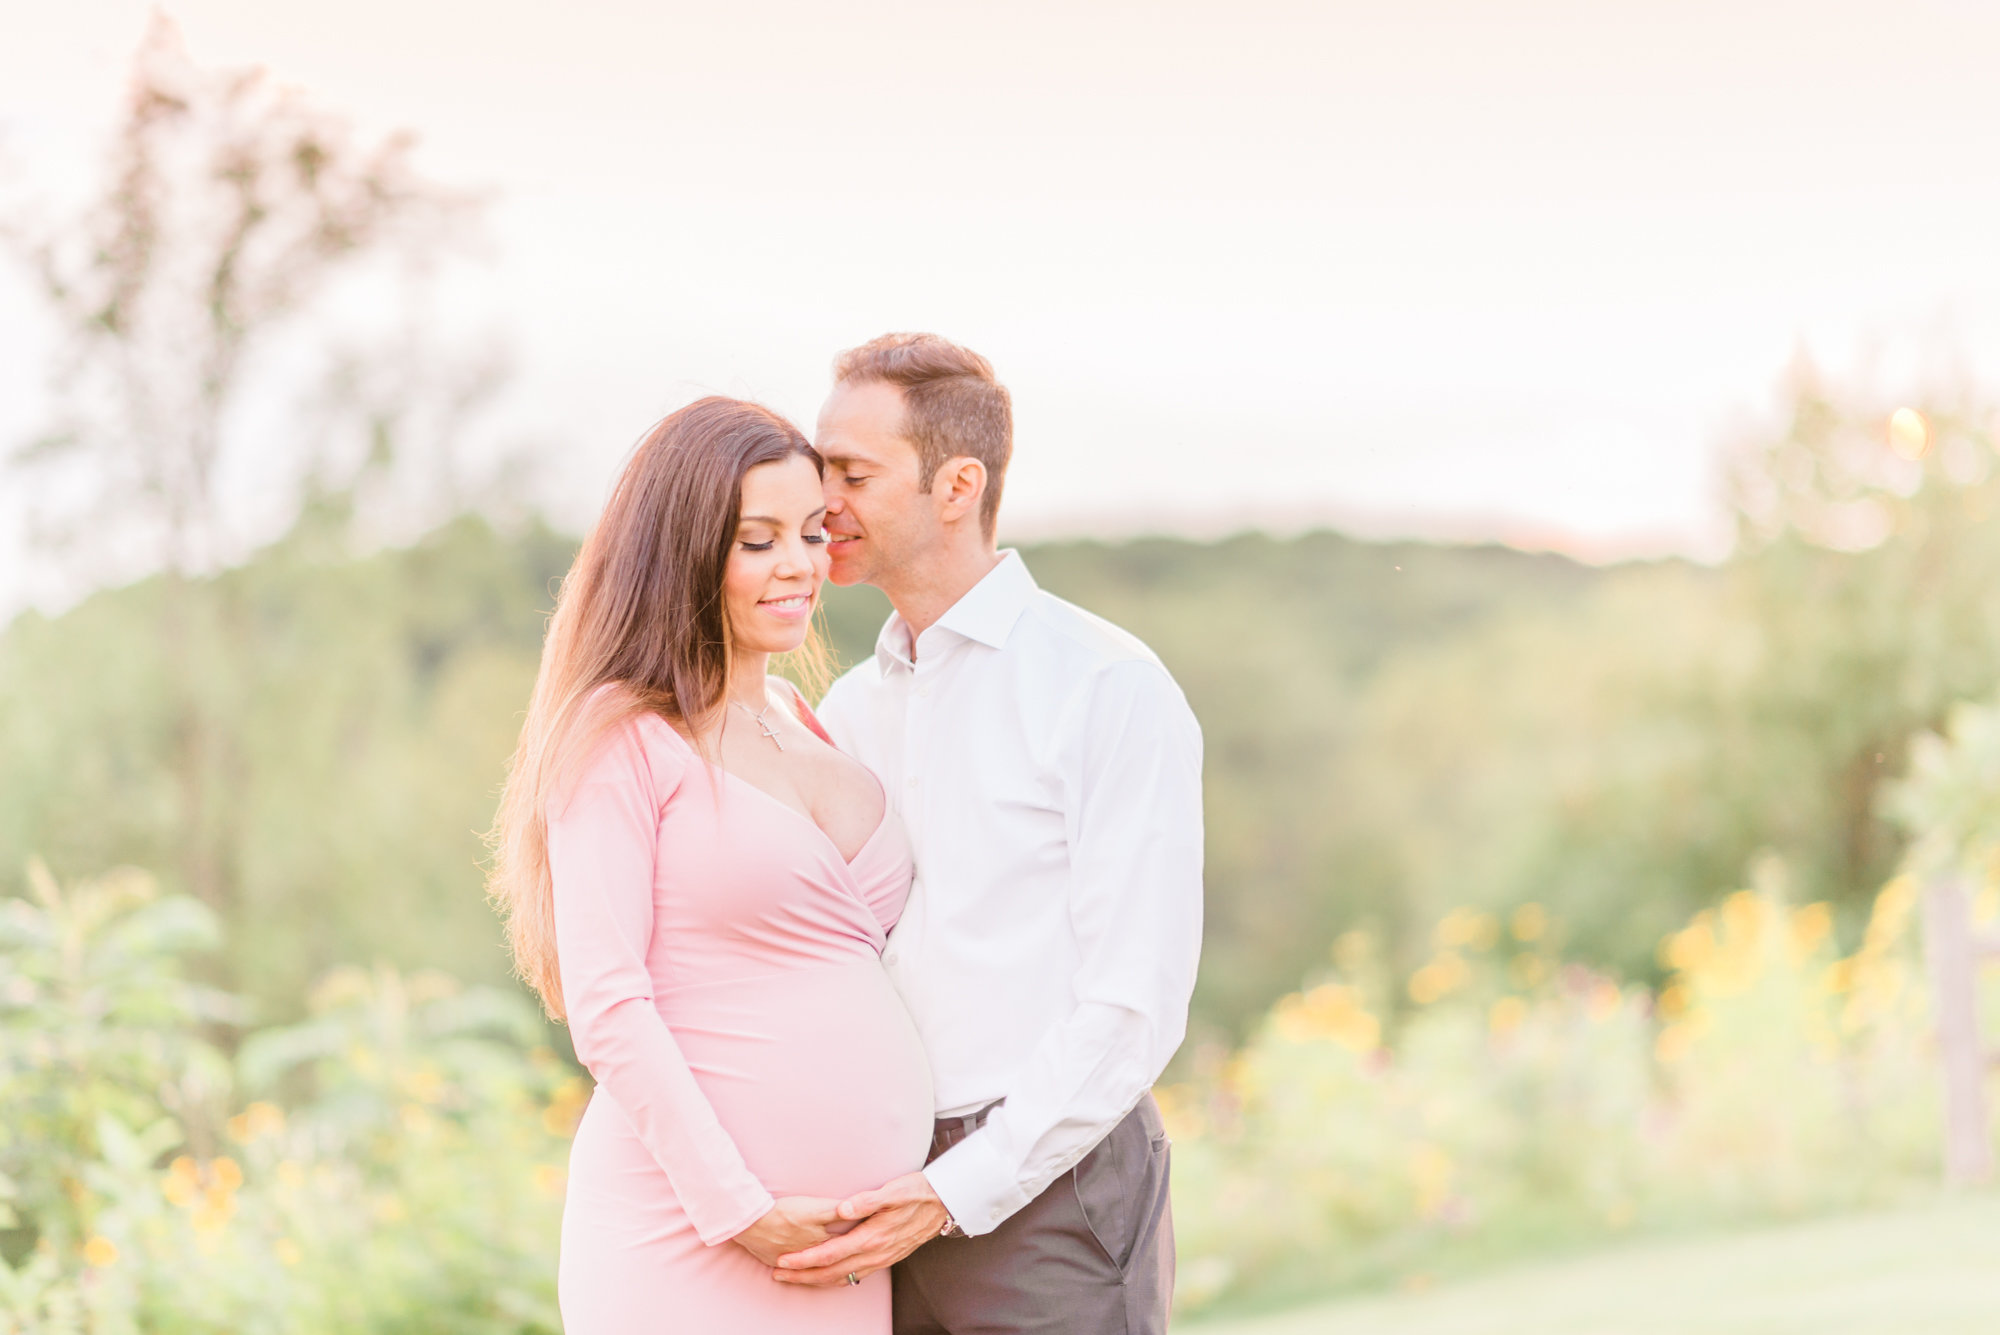 michigan-maternity-photographers-20